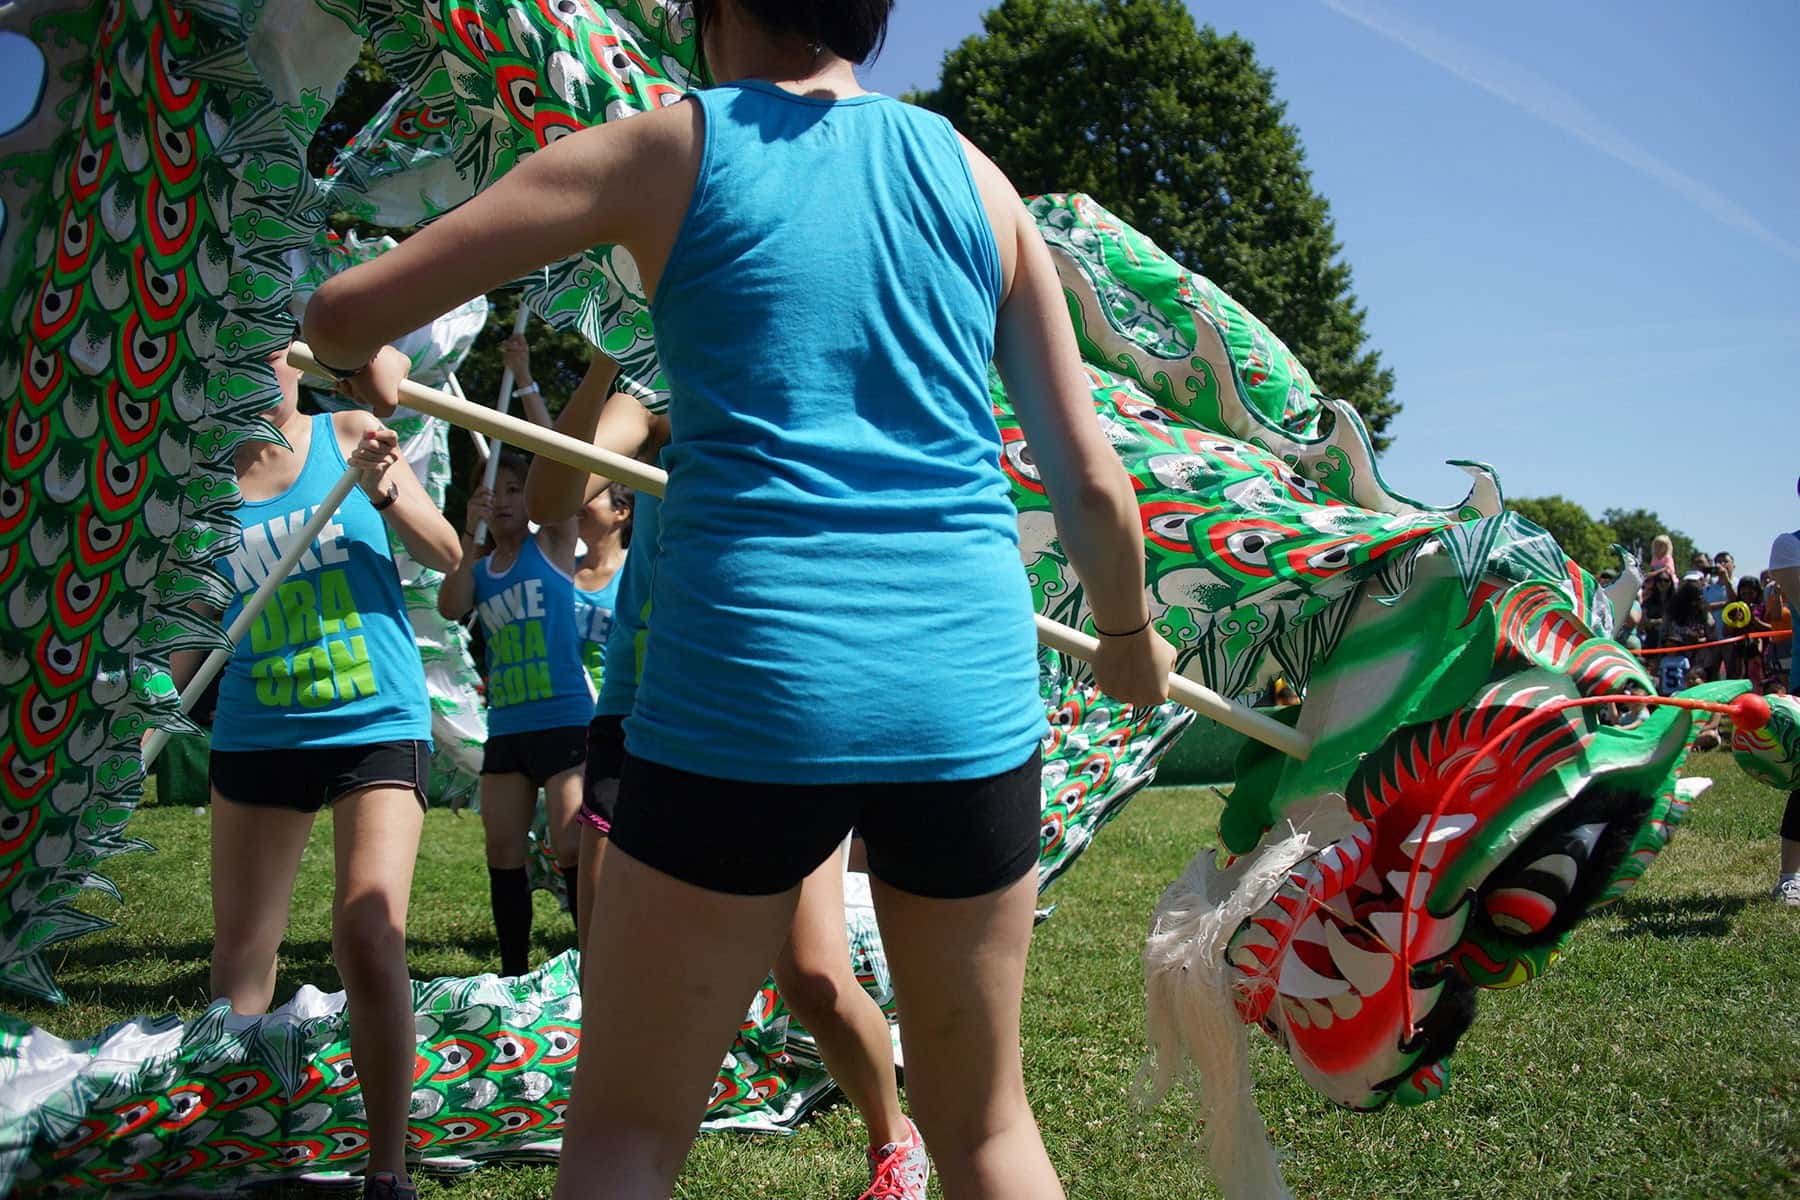 080116_dragonboat_album_02_03